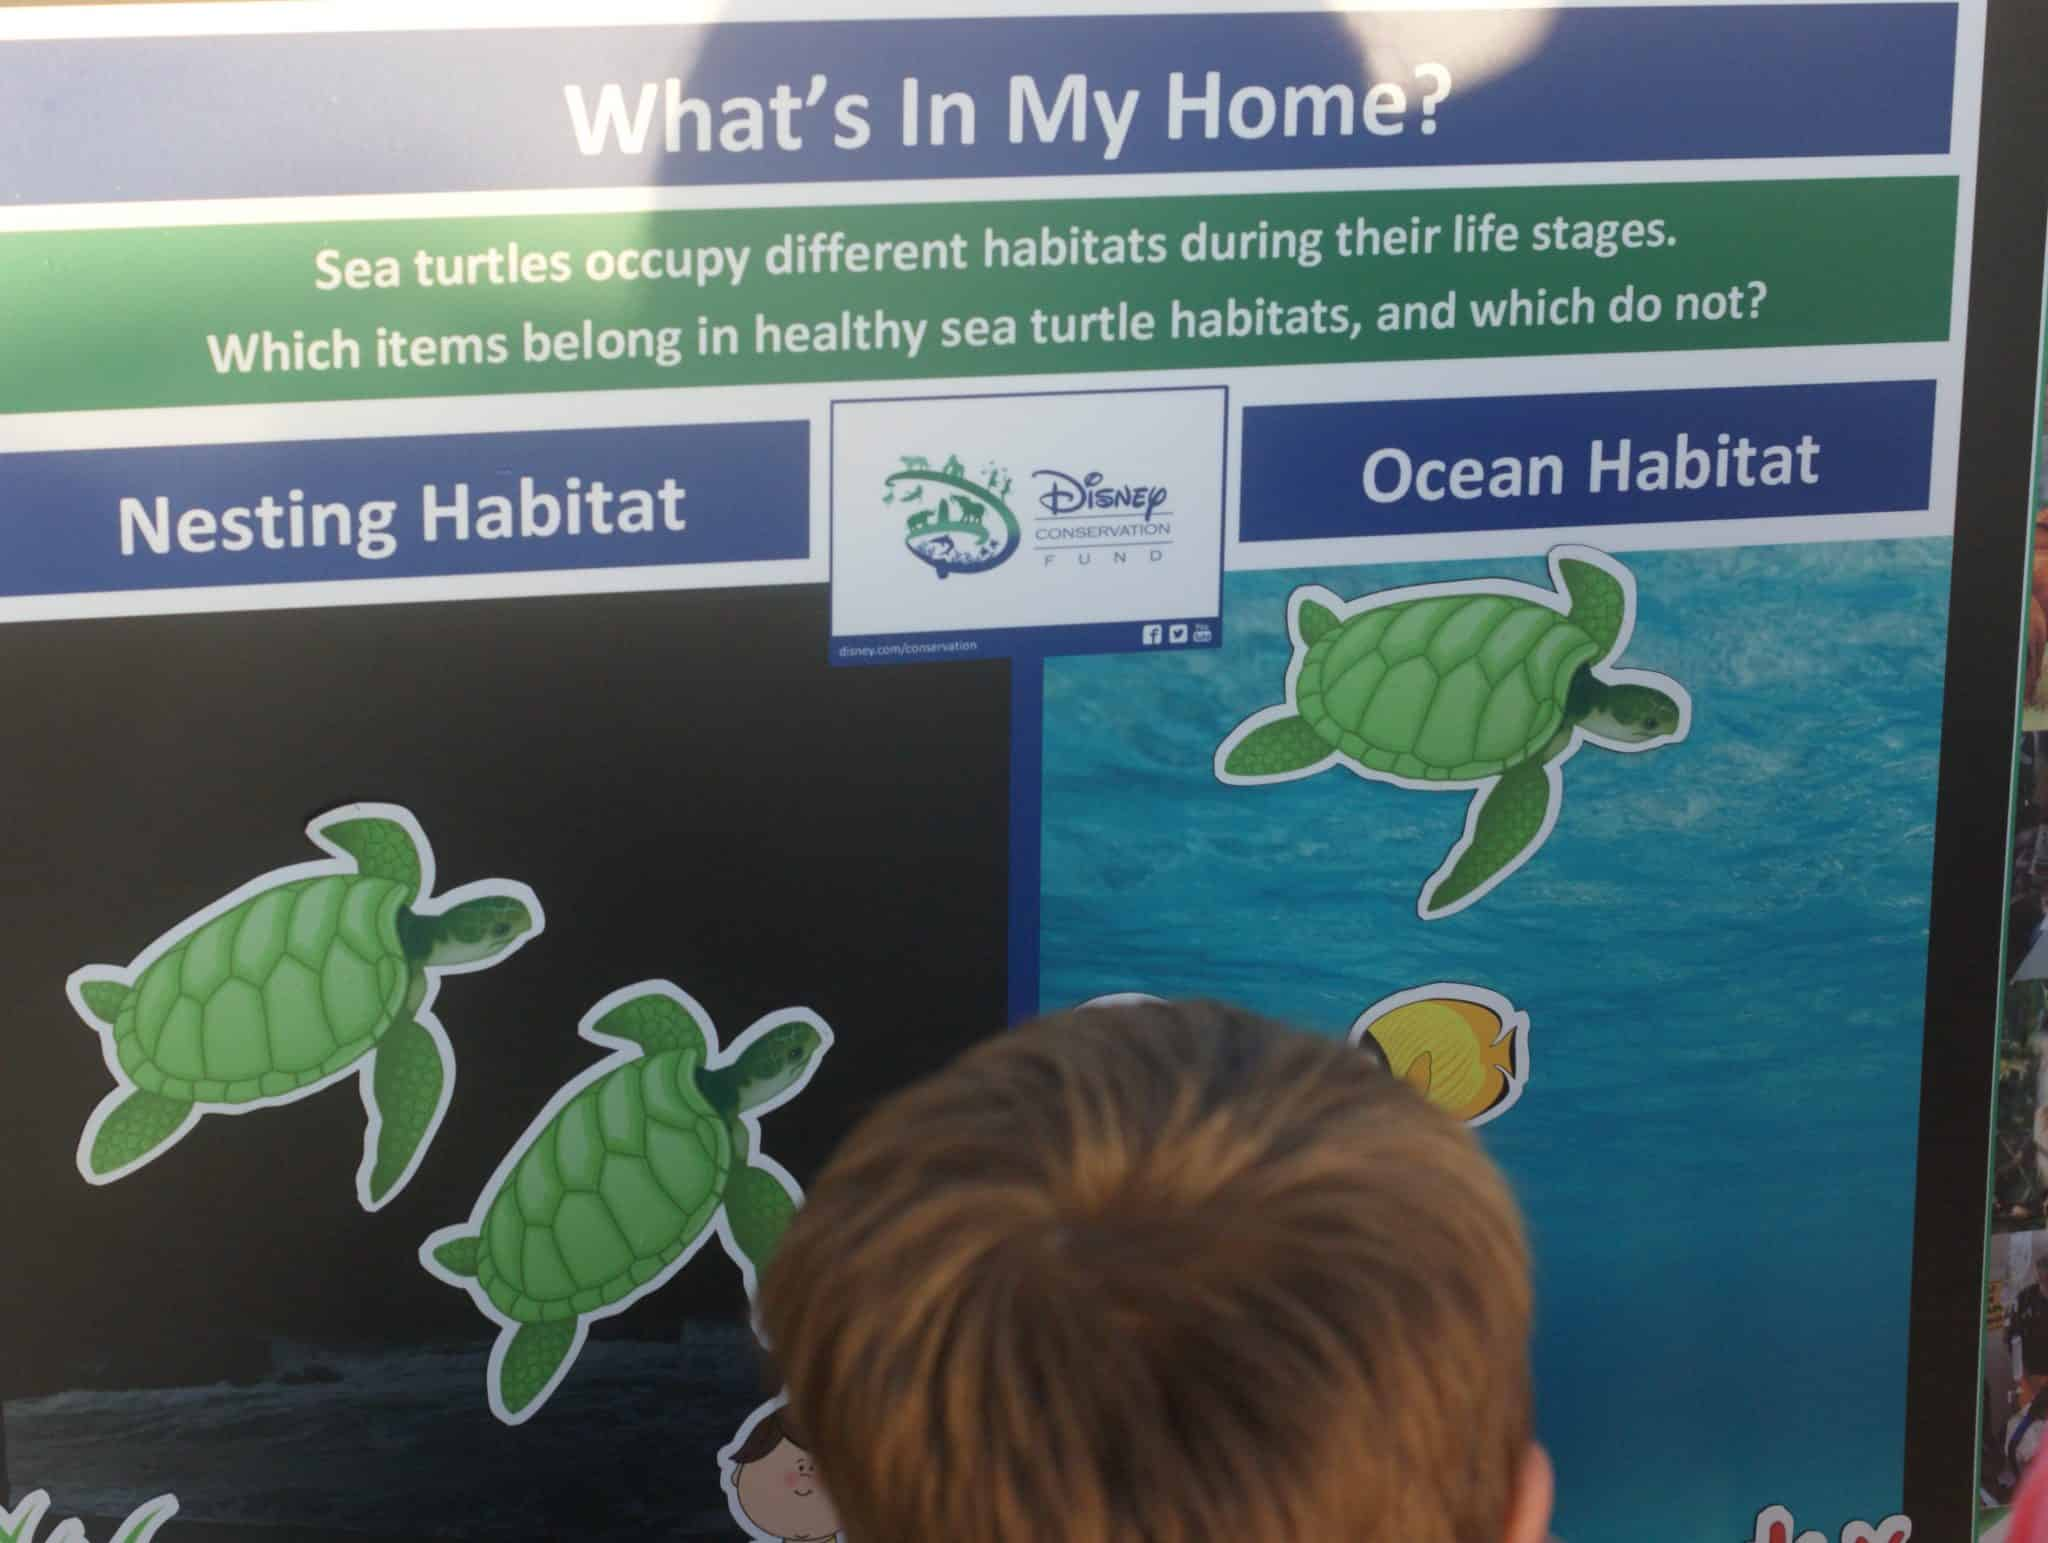 What we learned at theTour De Turtles at Disney's Vero Beach Resort - What's in My Home?